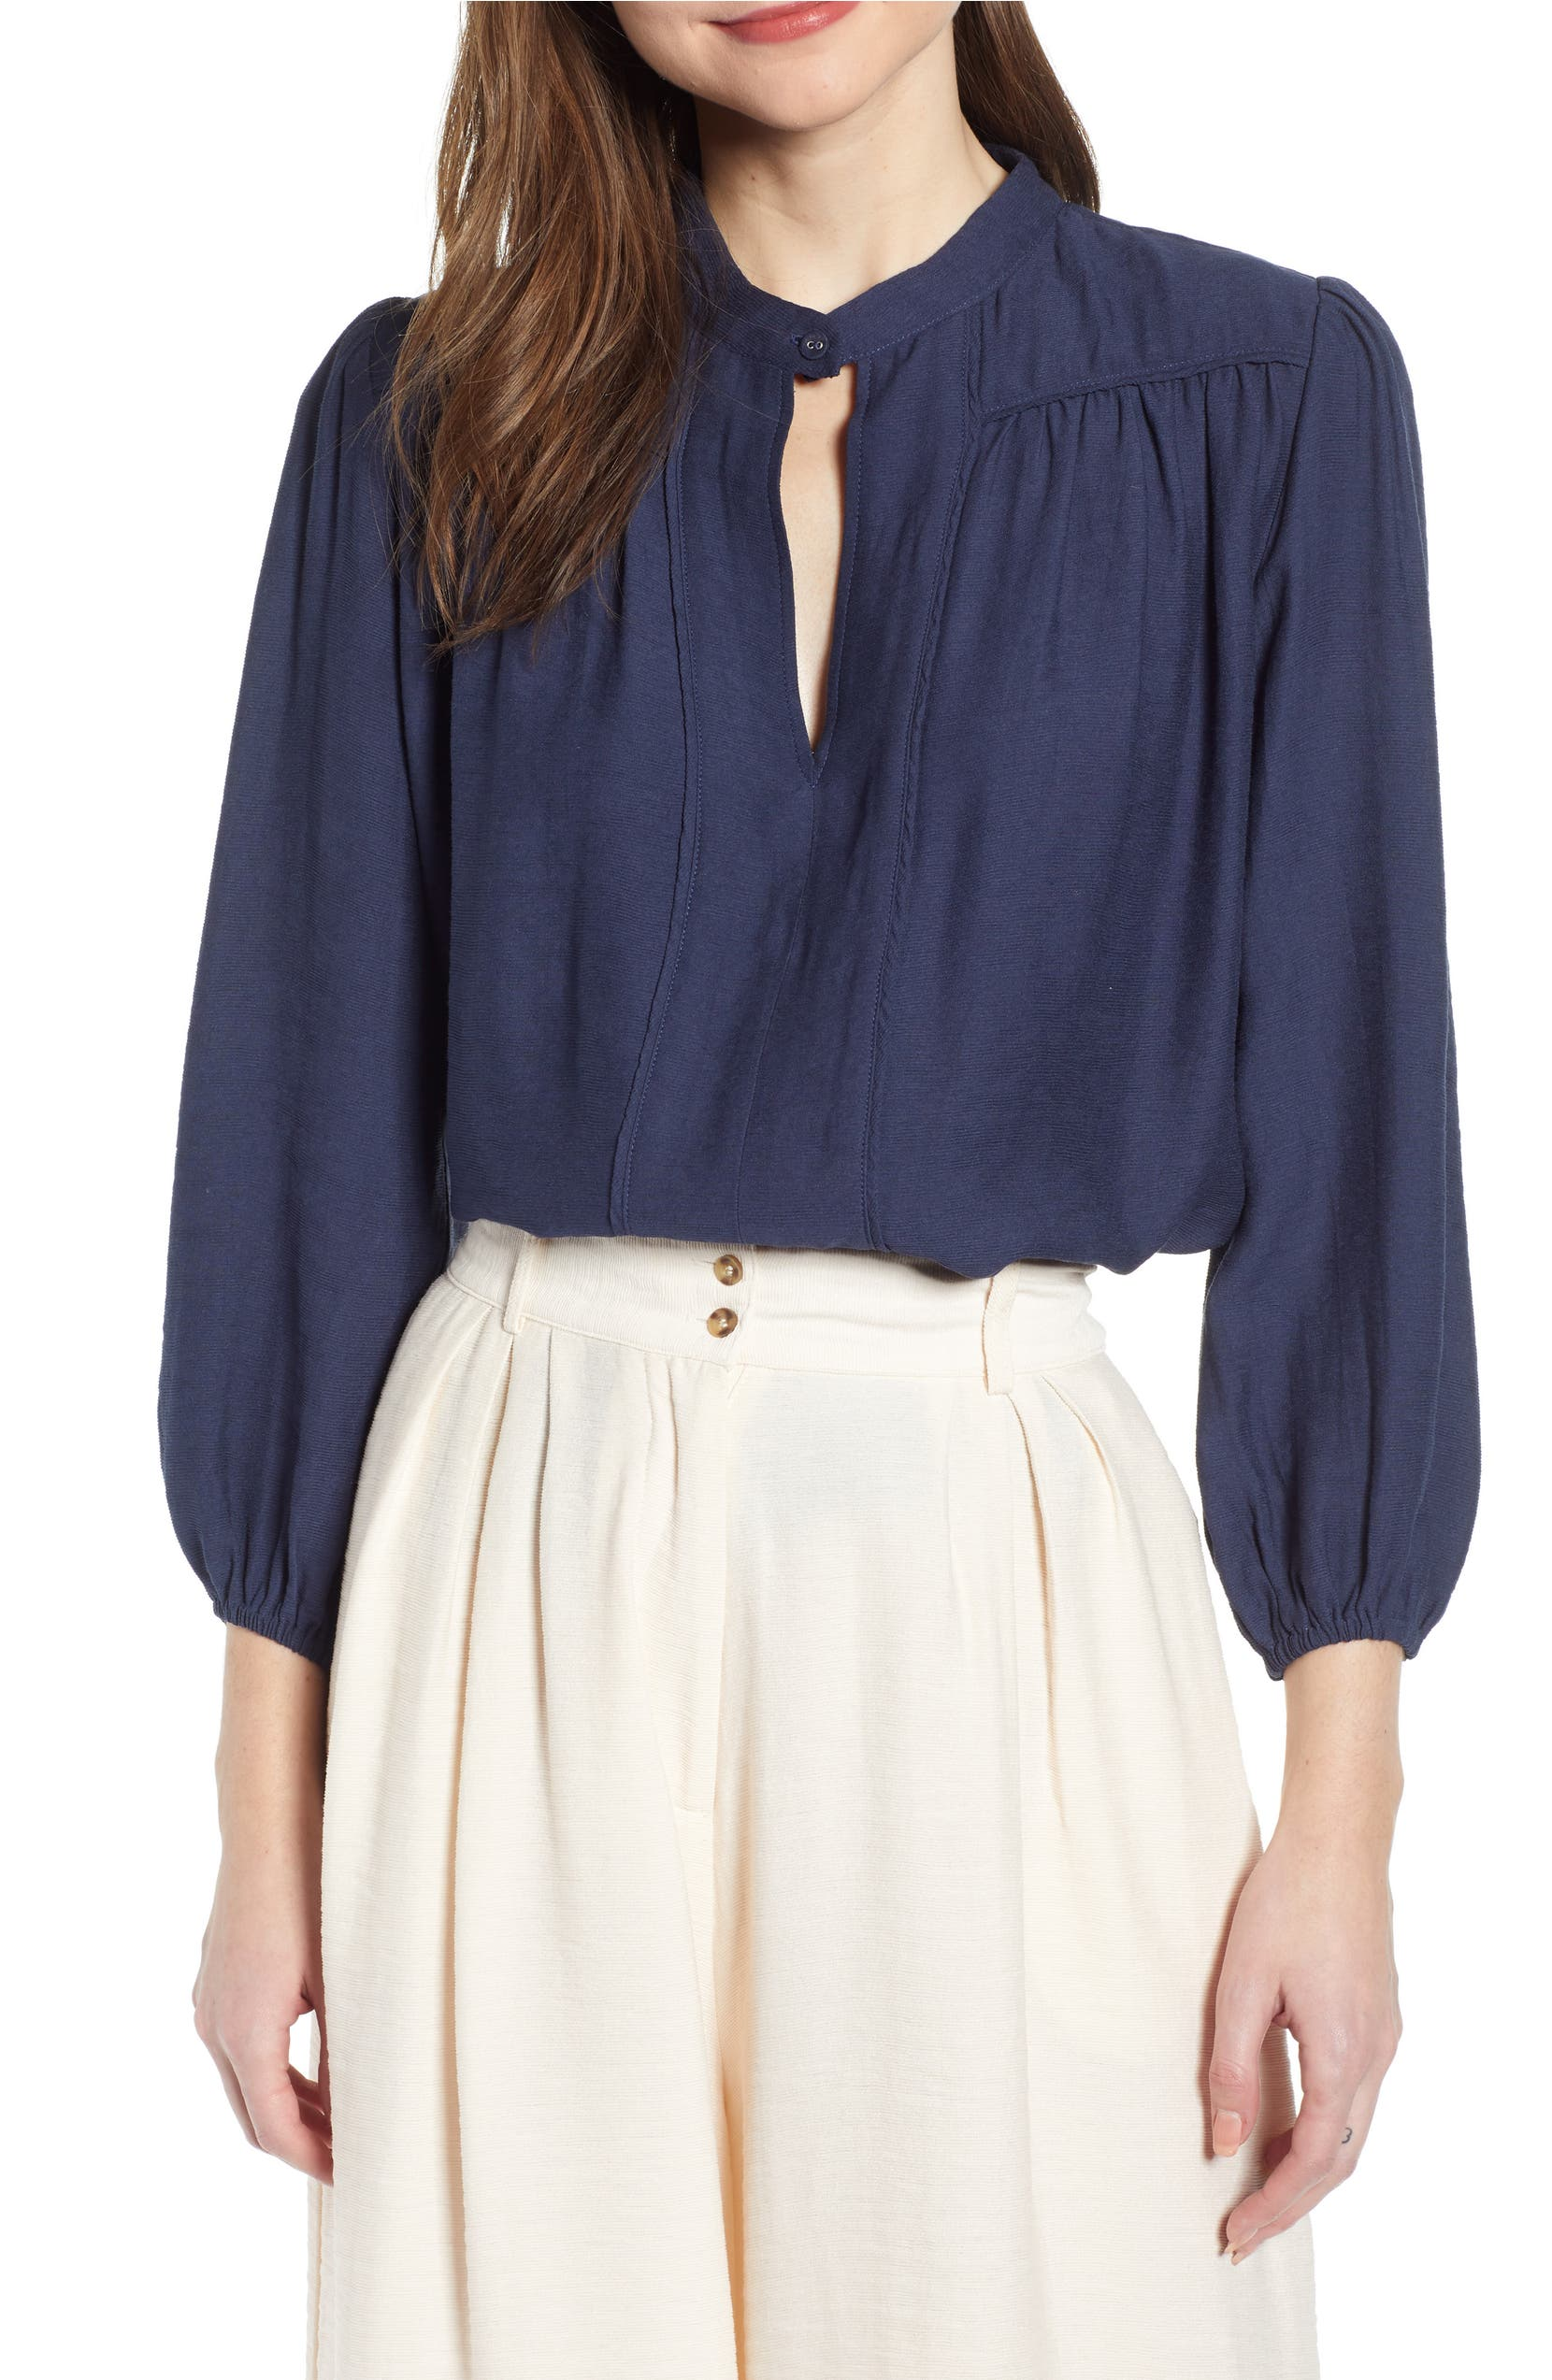 db633a74ed881 THE ODELLS Keyhole Detail Poet Blouse